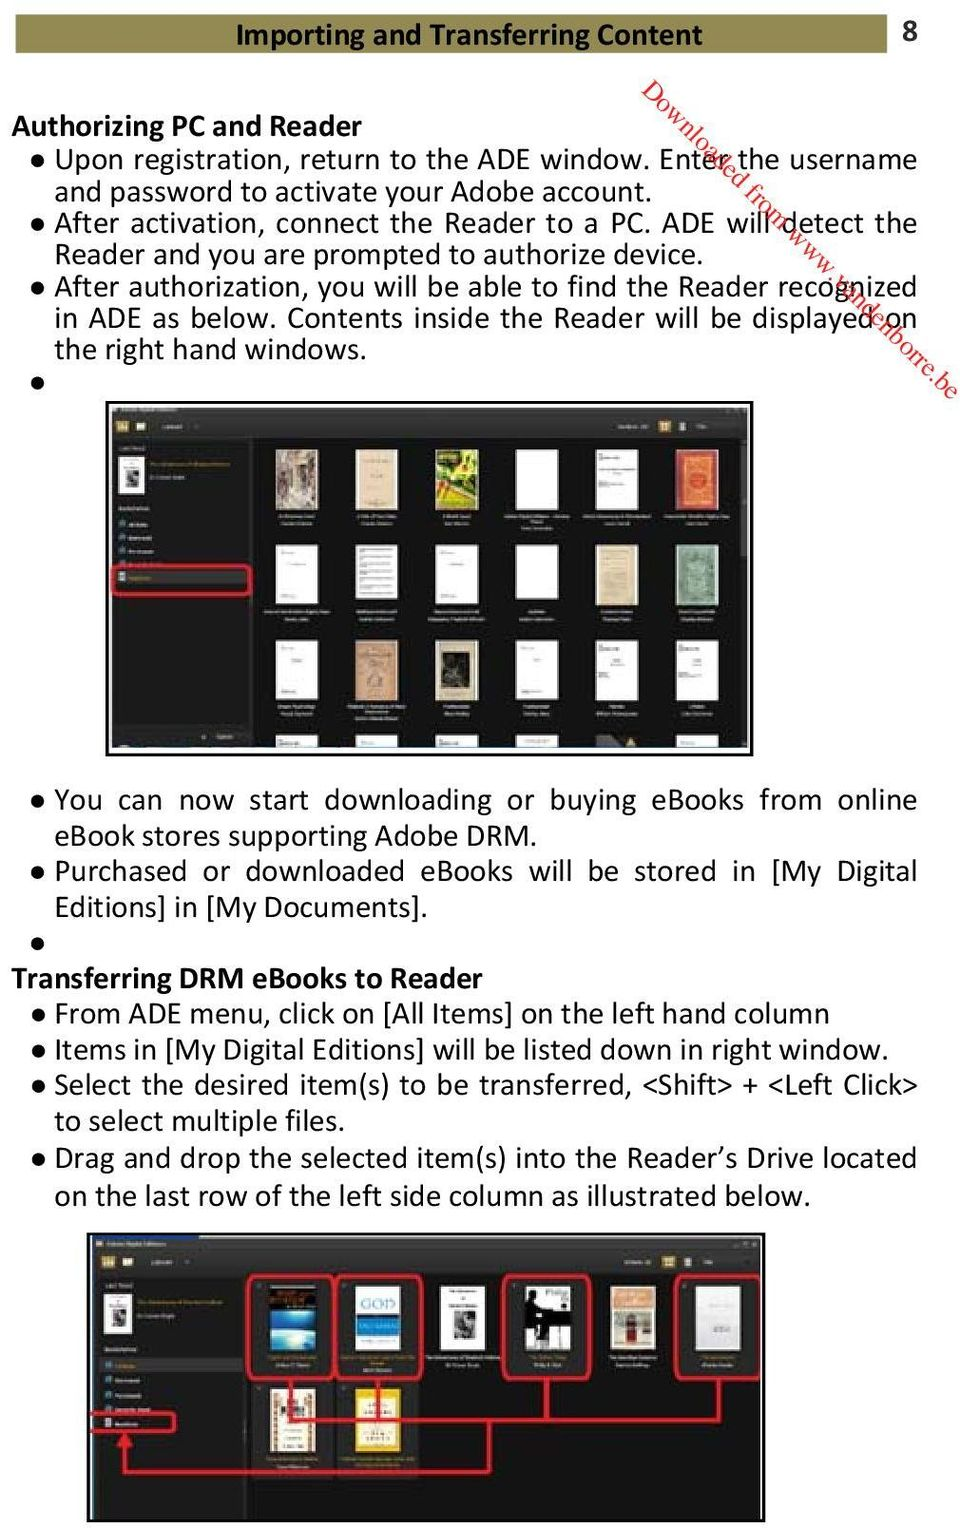 Contents inside the Reader will be displayed on the right hand windows. You can now start downloading or buying ebooks from online ebook stores supporting Adobe DRM.